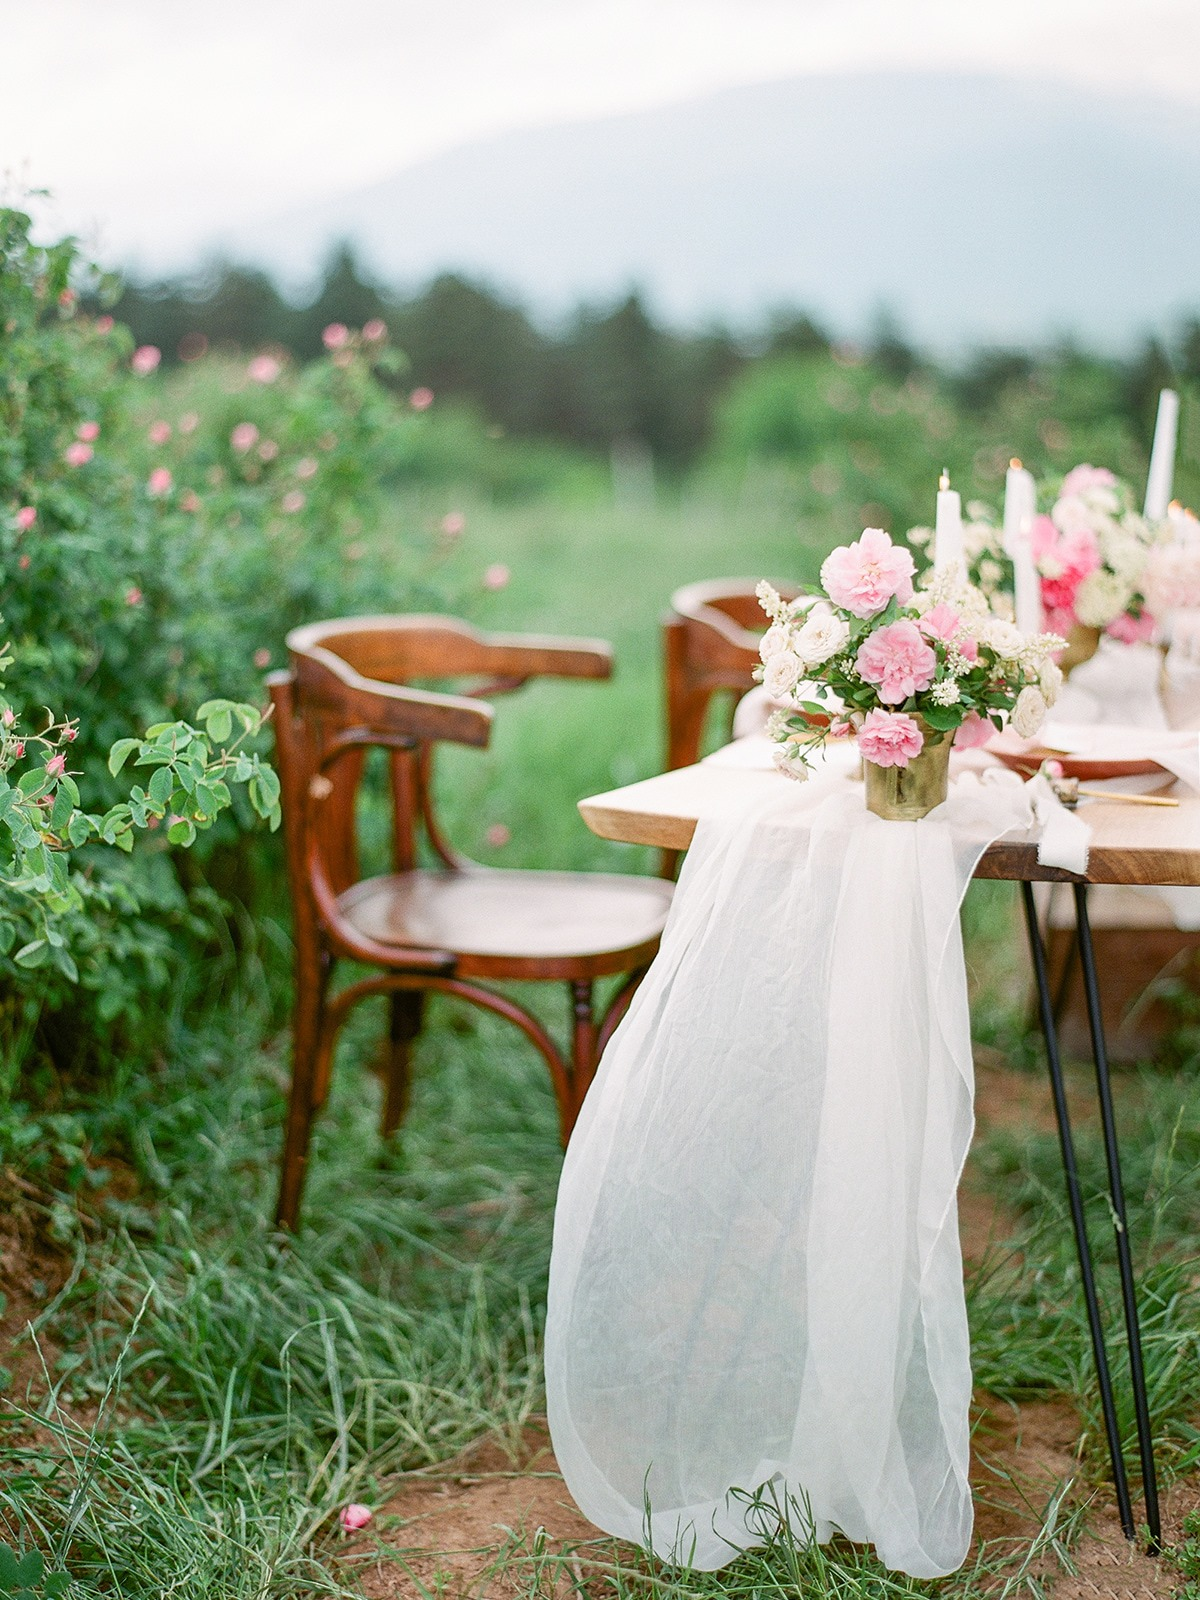 Flowy and pretty white silk table runner for dreamy outdoor wedding reception 2019